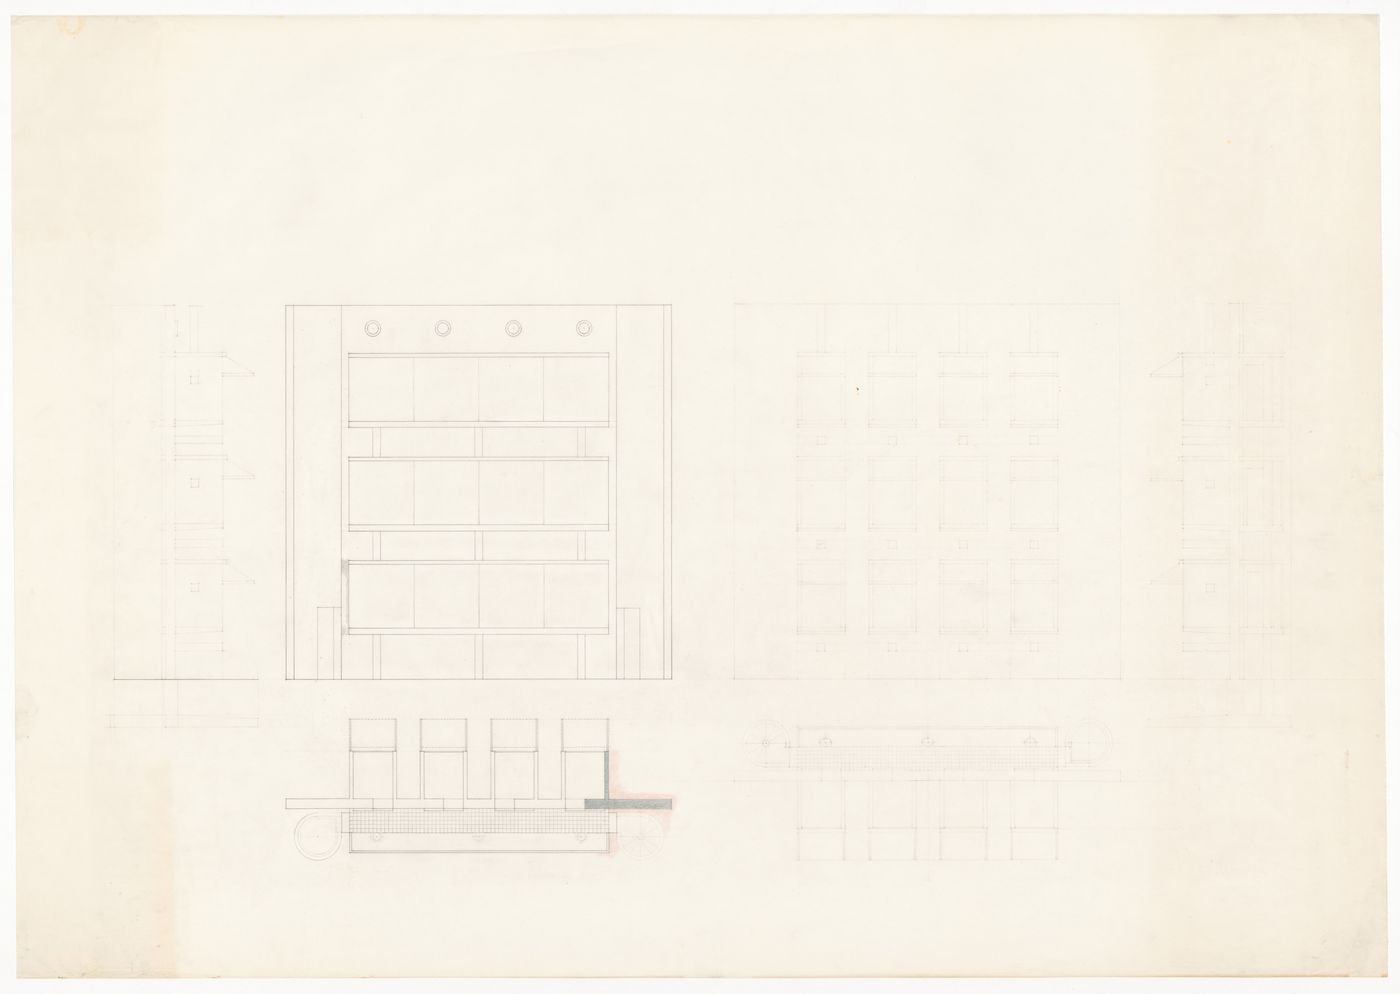 Elevations and roof plans for The House for the Inhabitant who Refused to Participate